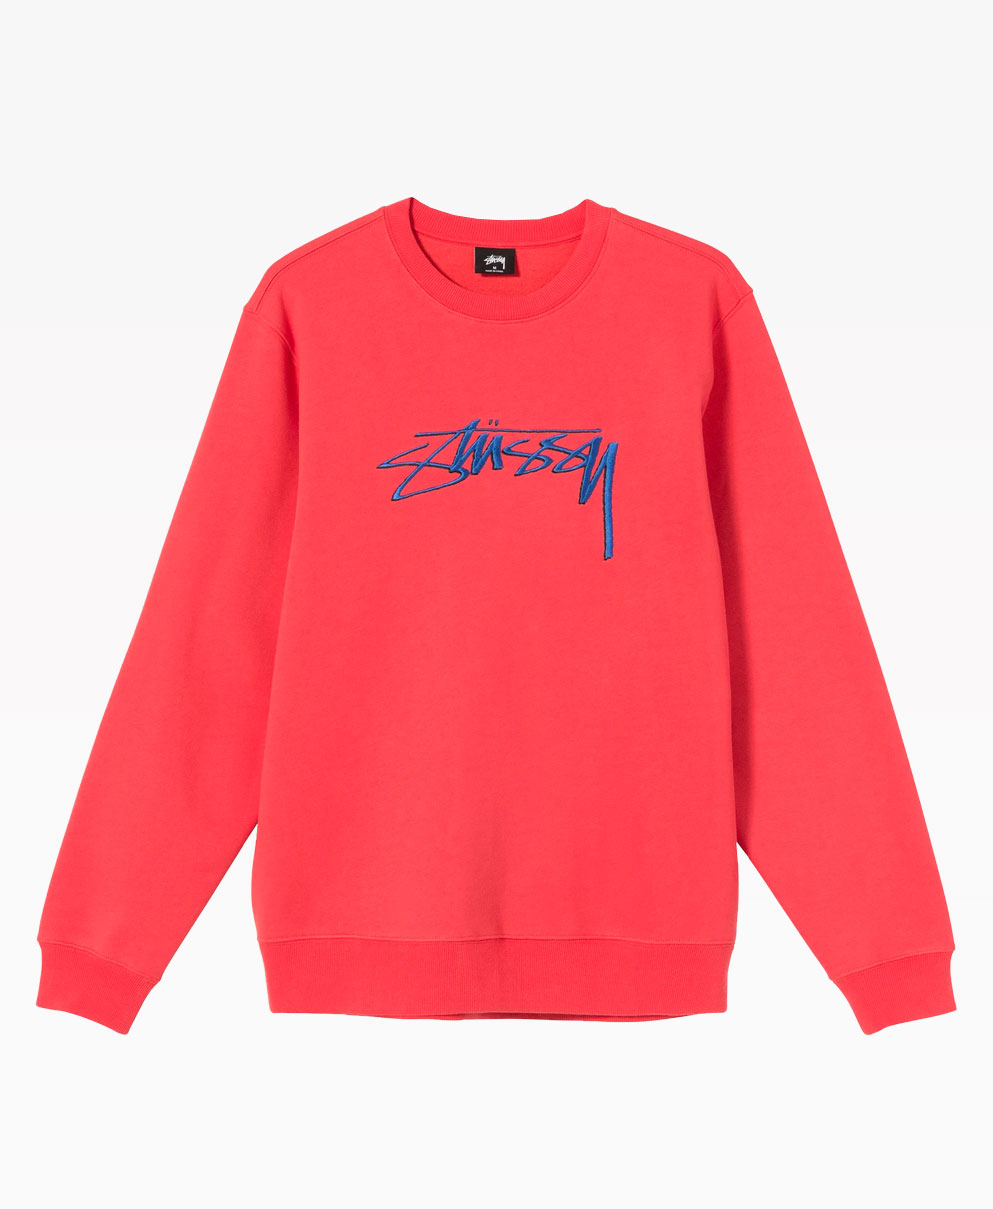 Stussy Smooth Stock Embroidered Crewneck Pale Red Front